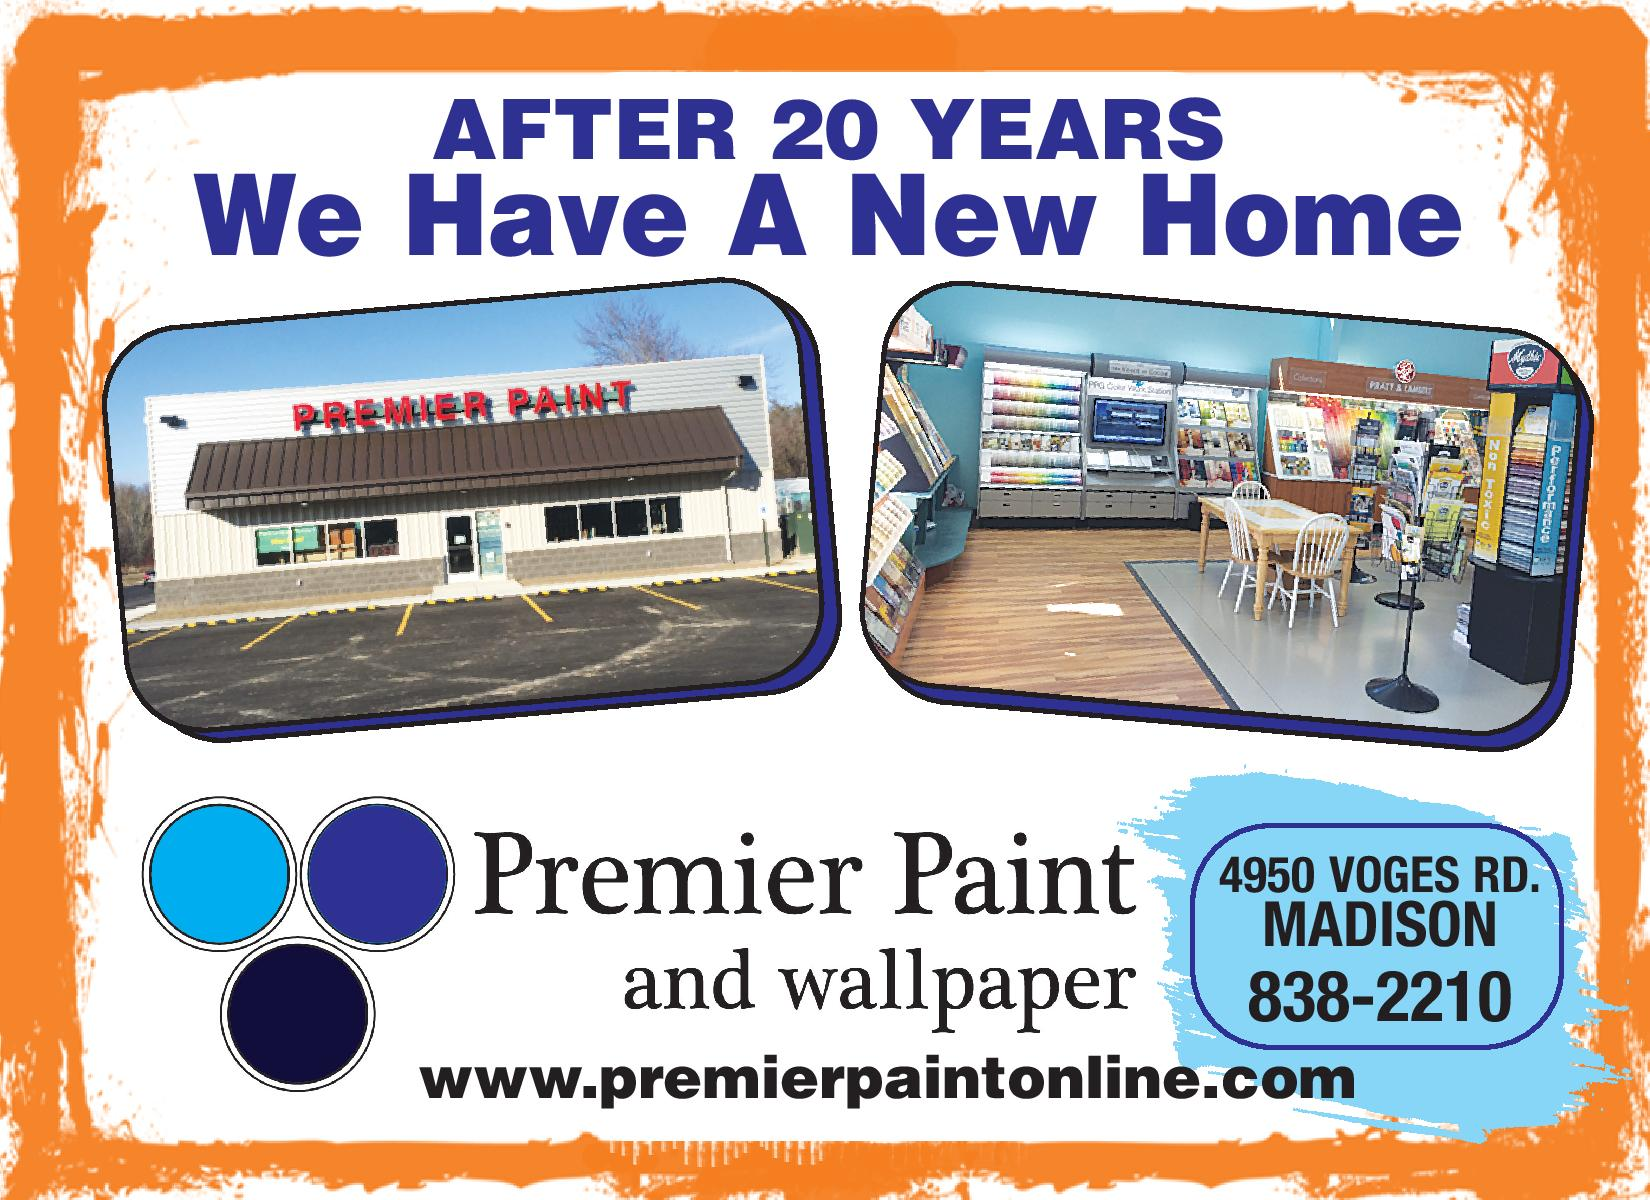 Premier Paint And Wallpaper